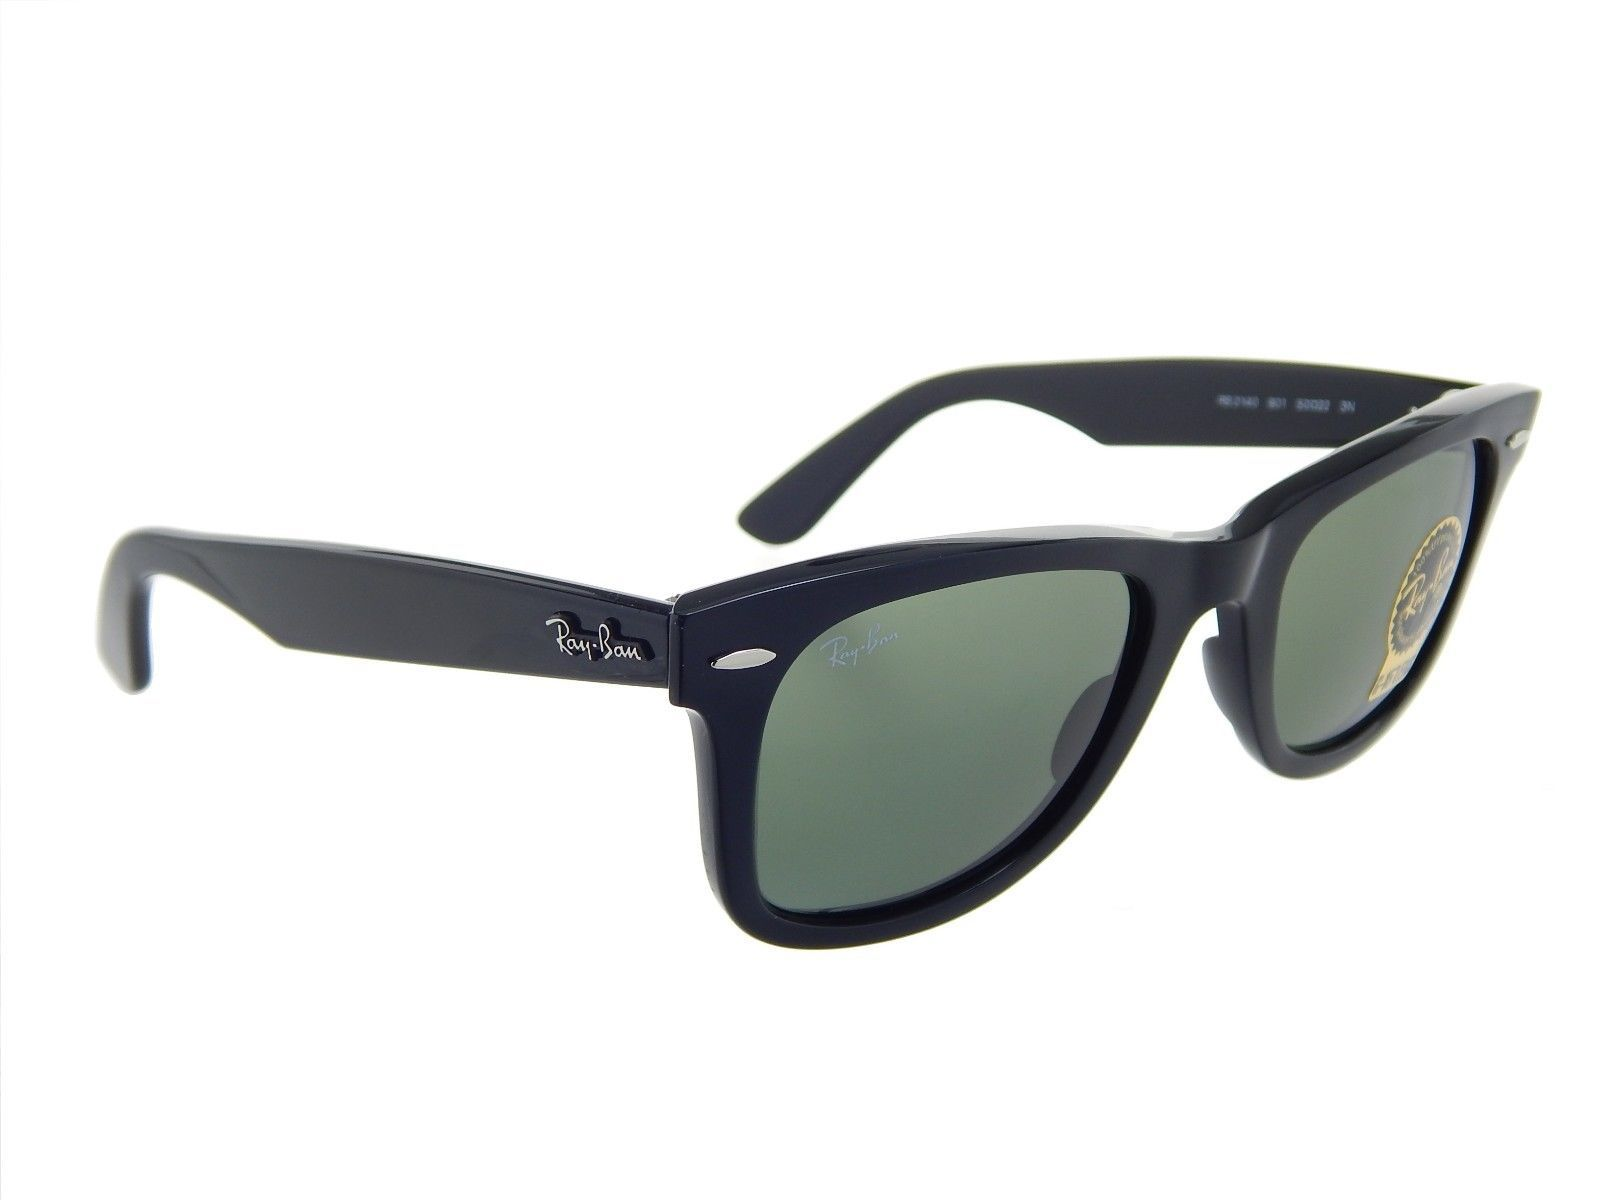 f29ba461814b2 ... new w lenses sunglasses tradesy 3fd86 a16ff  spain ray ban rb2140  classic wayfarer shades black g 15 lens 54mm 50 off 76.50 95b6a